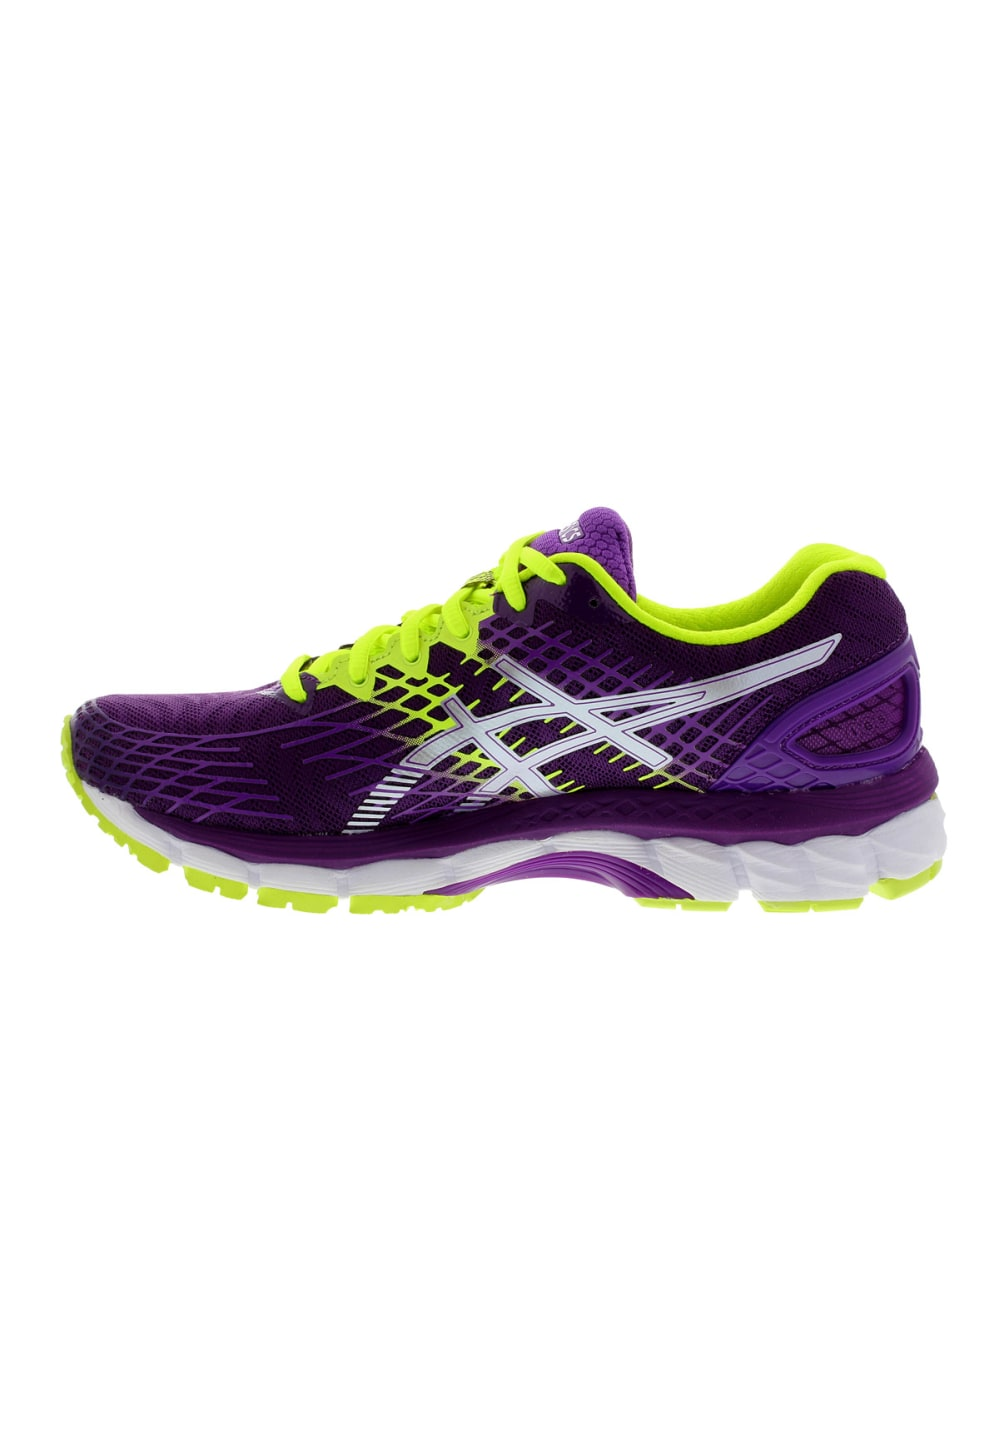 différemment fe58d fc0fd ASICS GEL-Nimbus 17 - Running shoes for Women - Purple